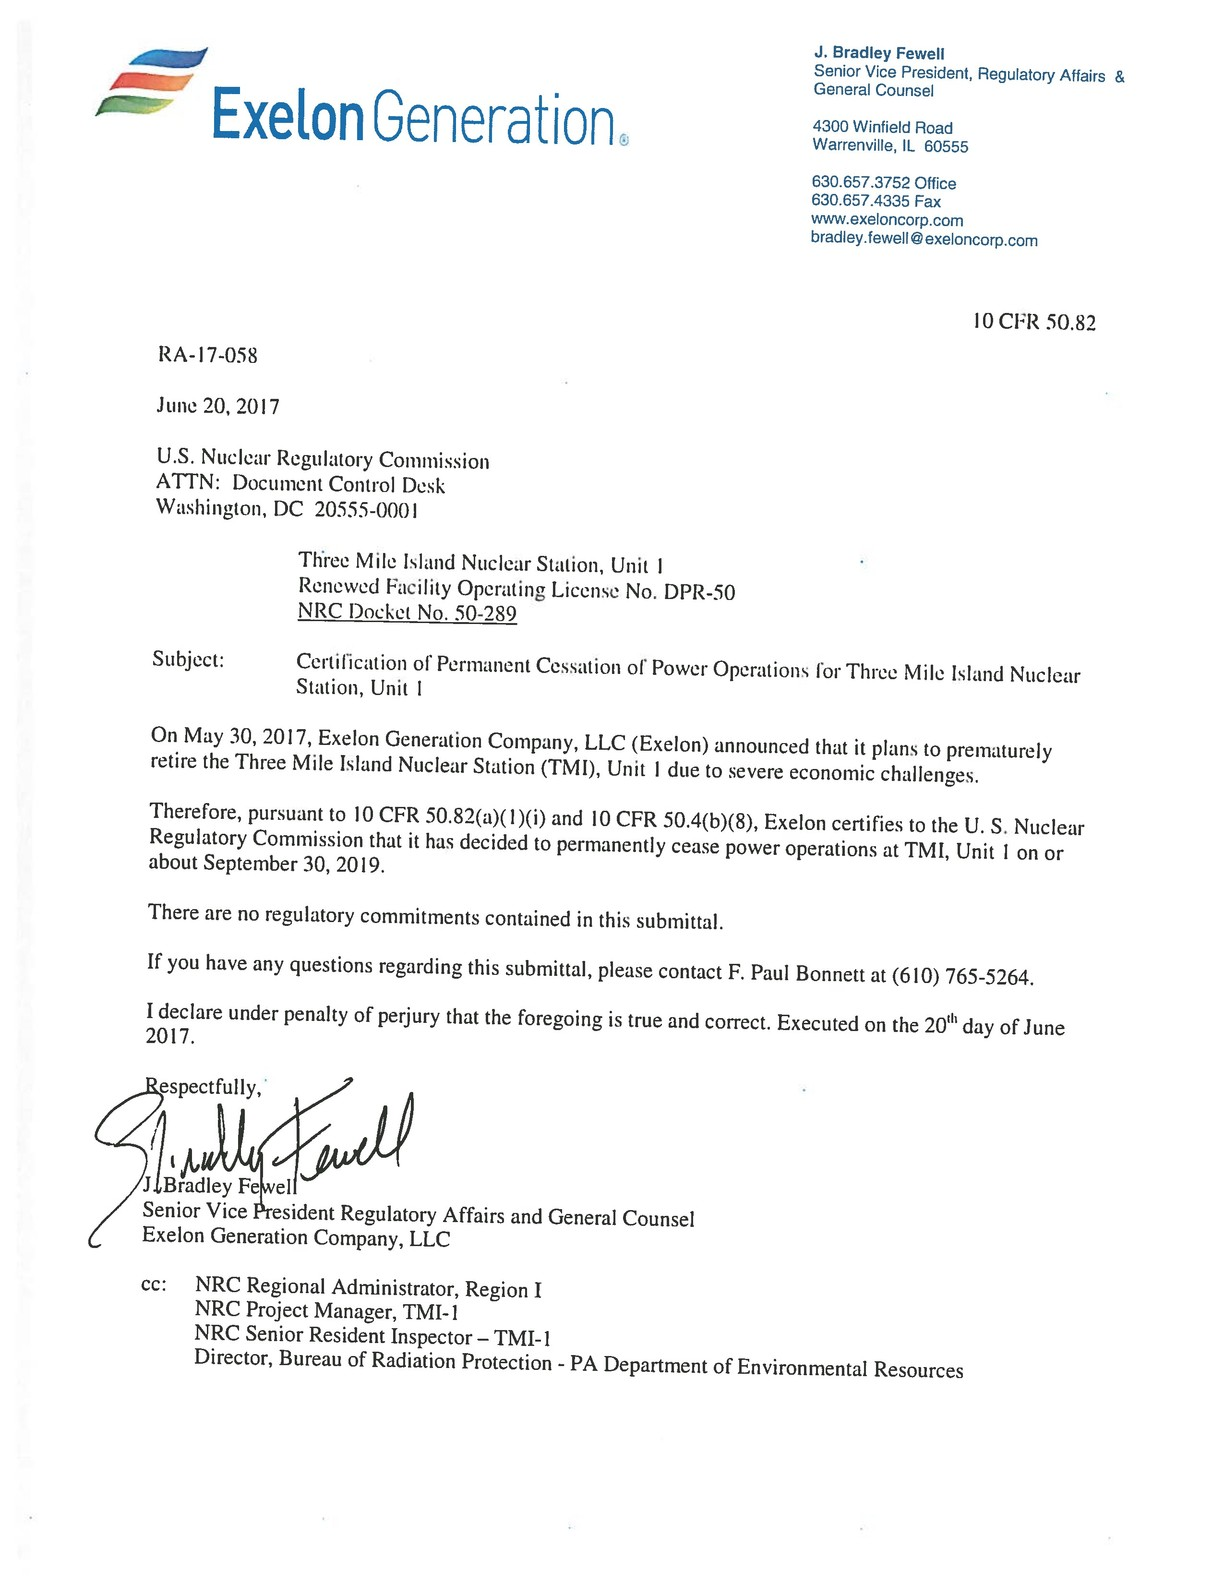 Letter from Exelon to the U.S. Nuclear Regulatory Commission on the planned closure of Three Mile Island.